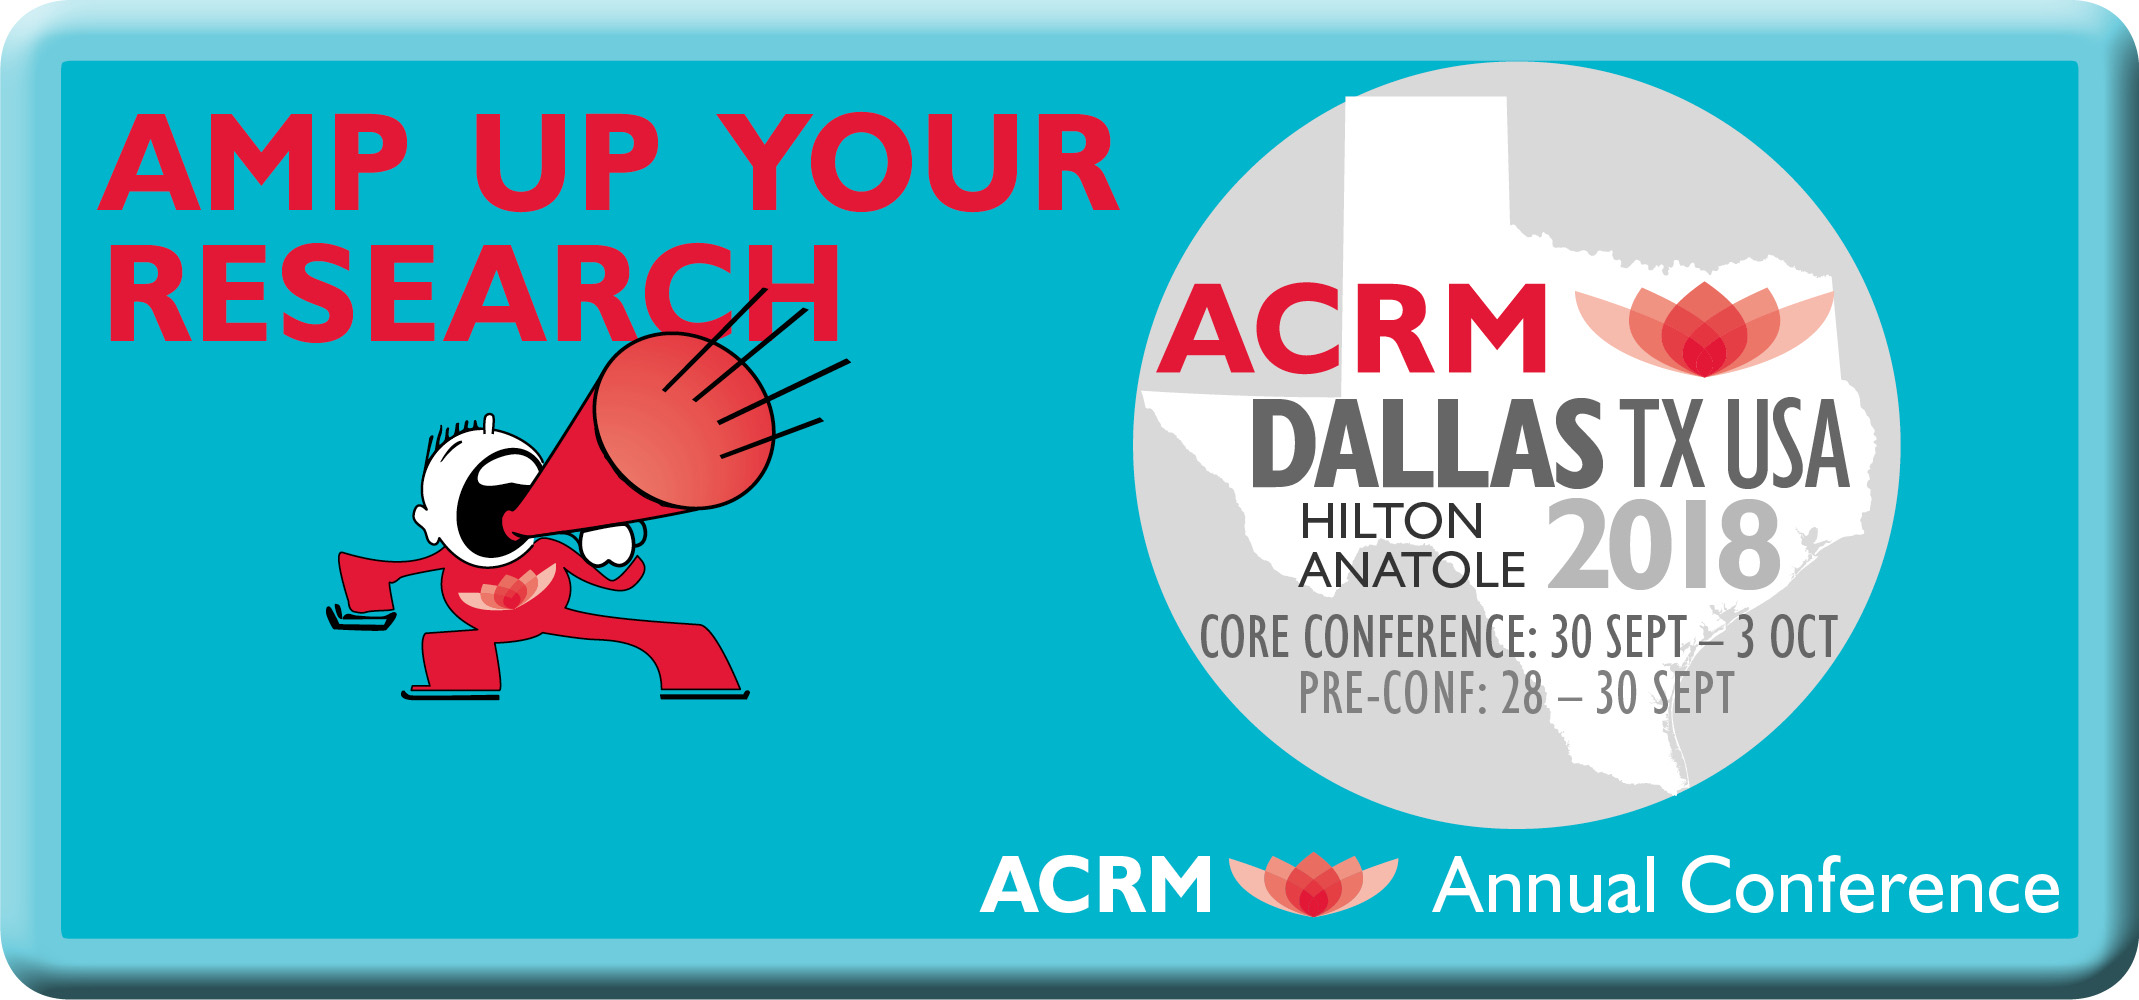 AMP UP YOUR RESEARCH Call for Proposals: ACRM Annual Conference 2018 Dallas